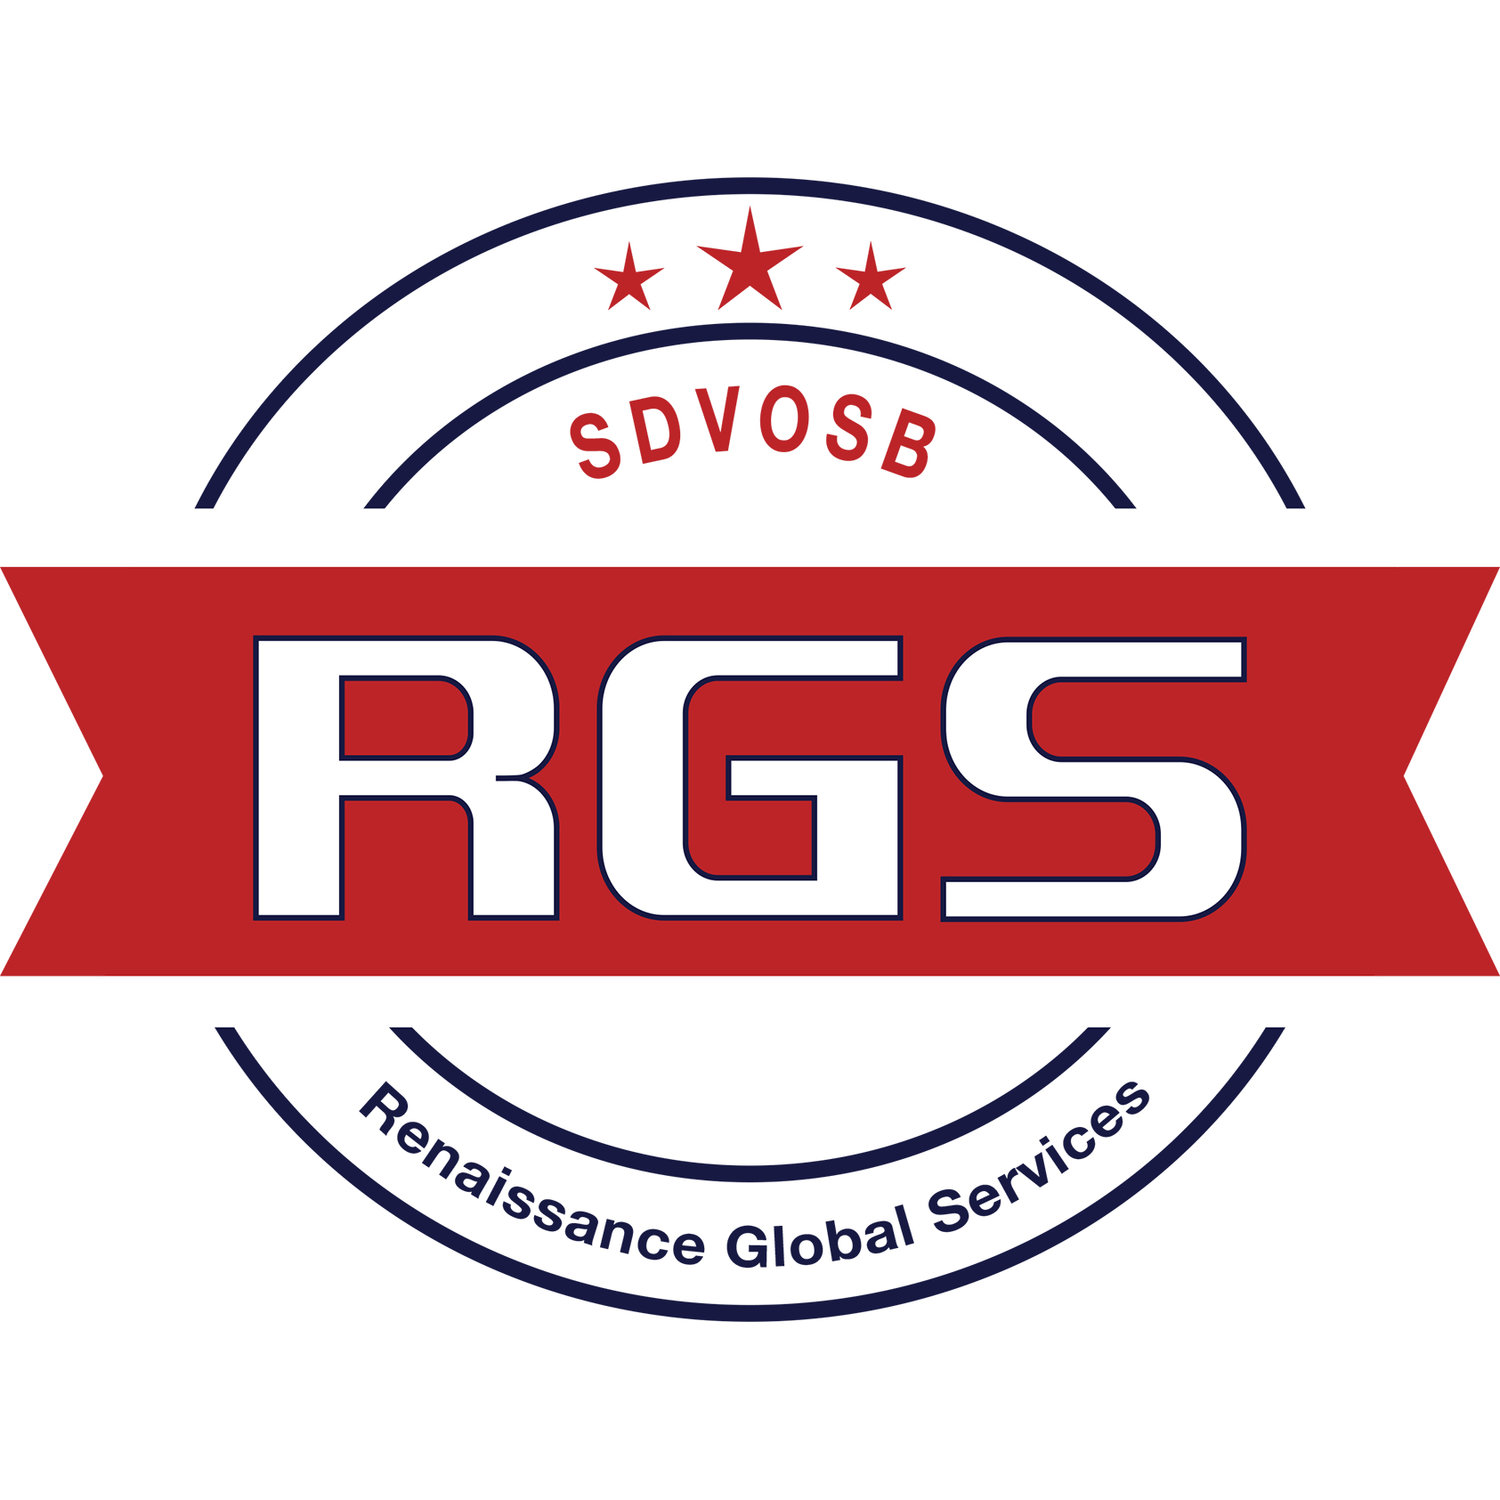 Renaissance Global Services